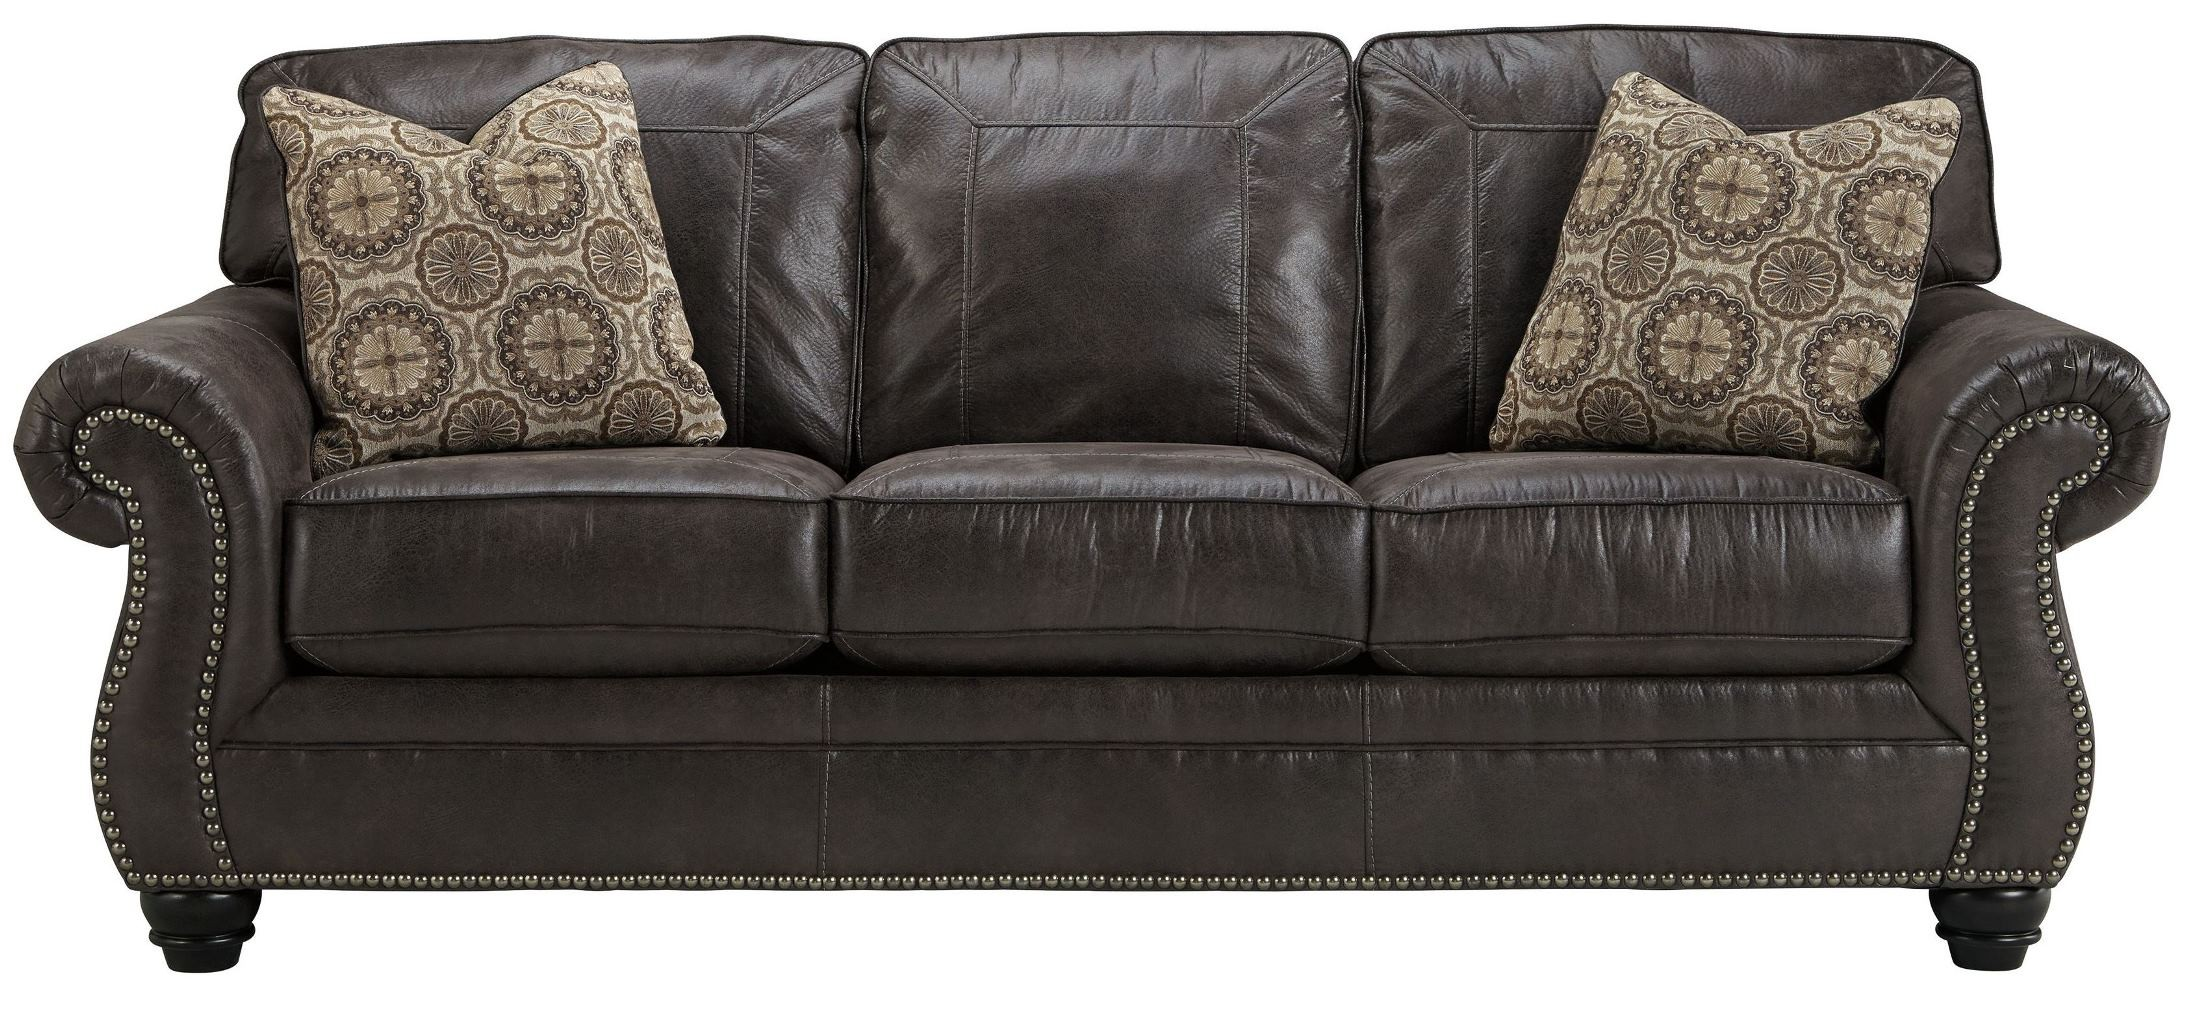 Breville Charcoal Living Room Set from Ashley 38 35